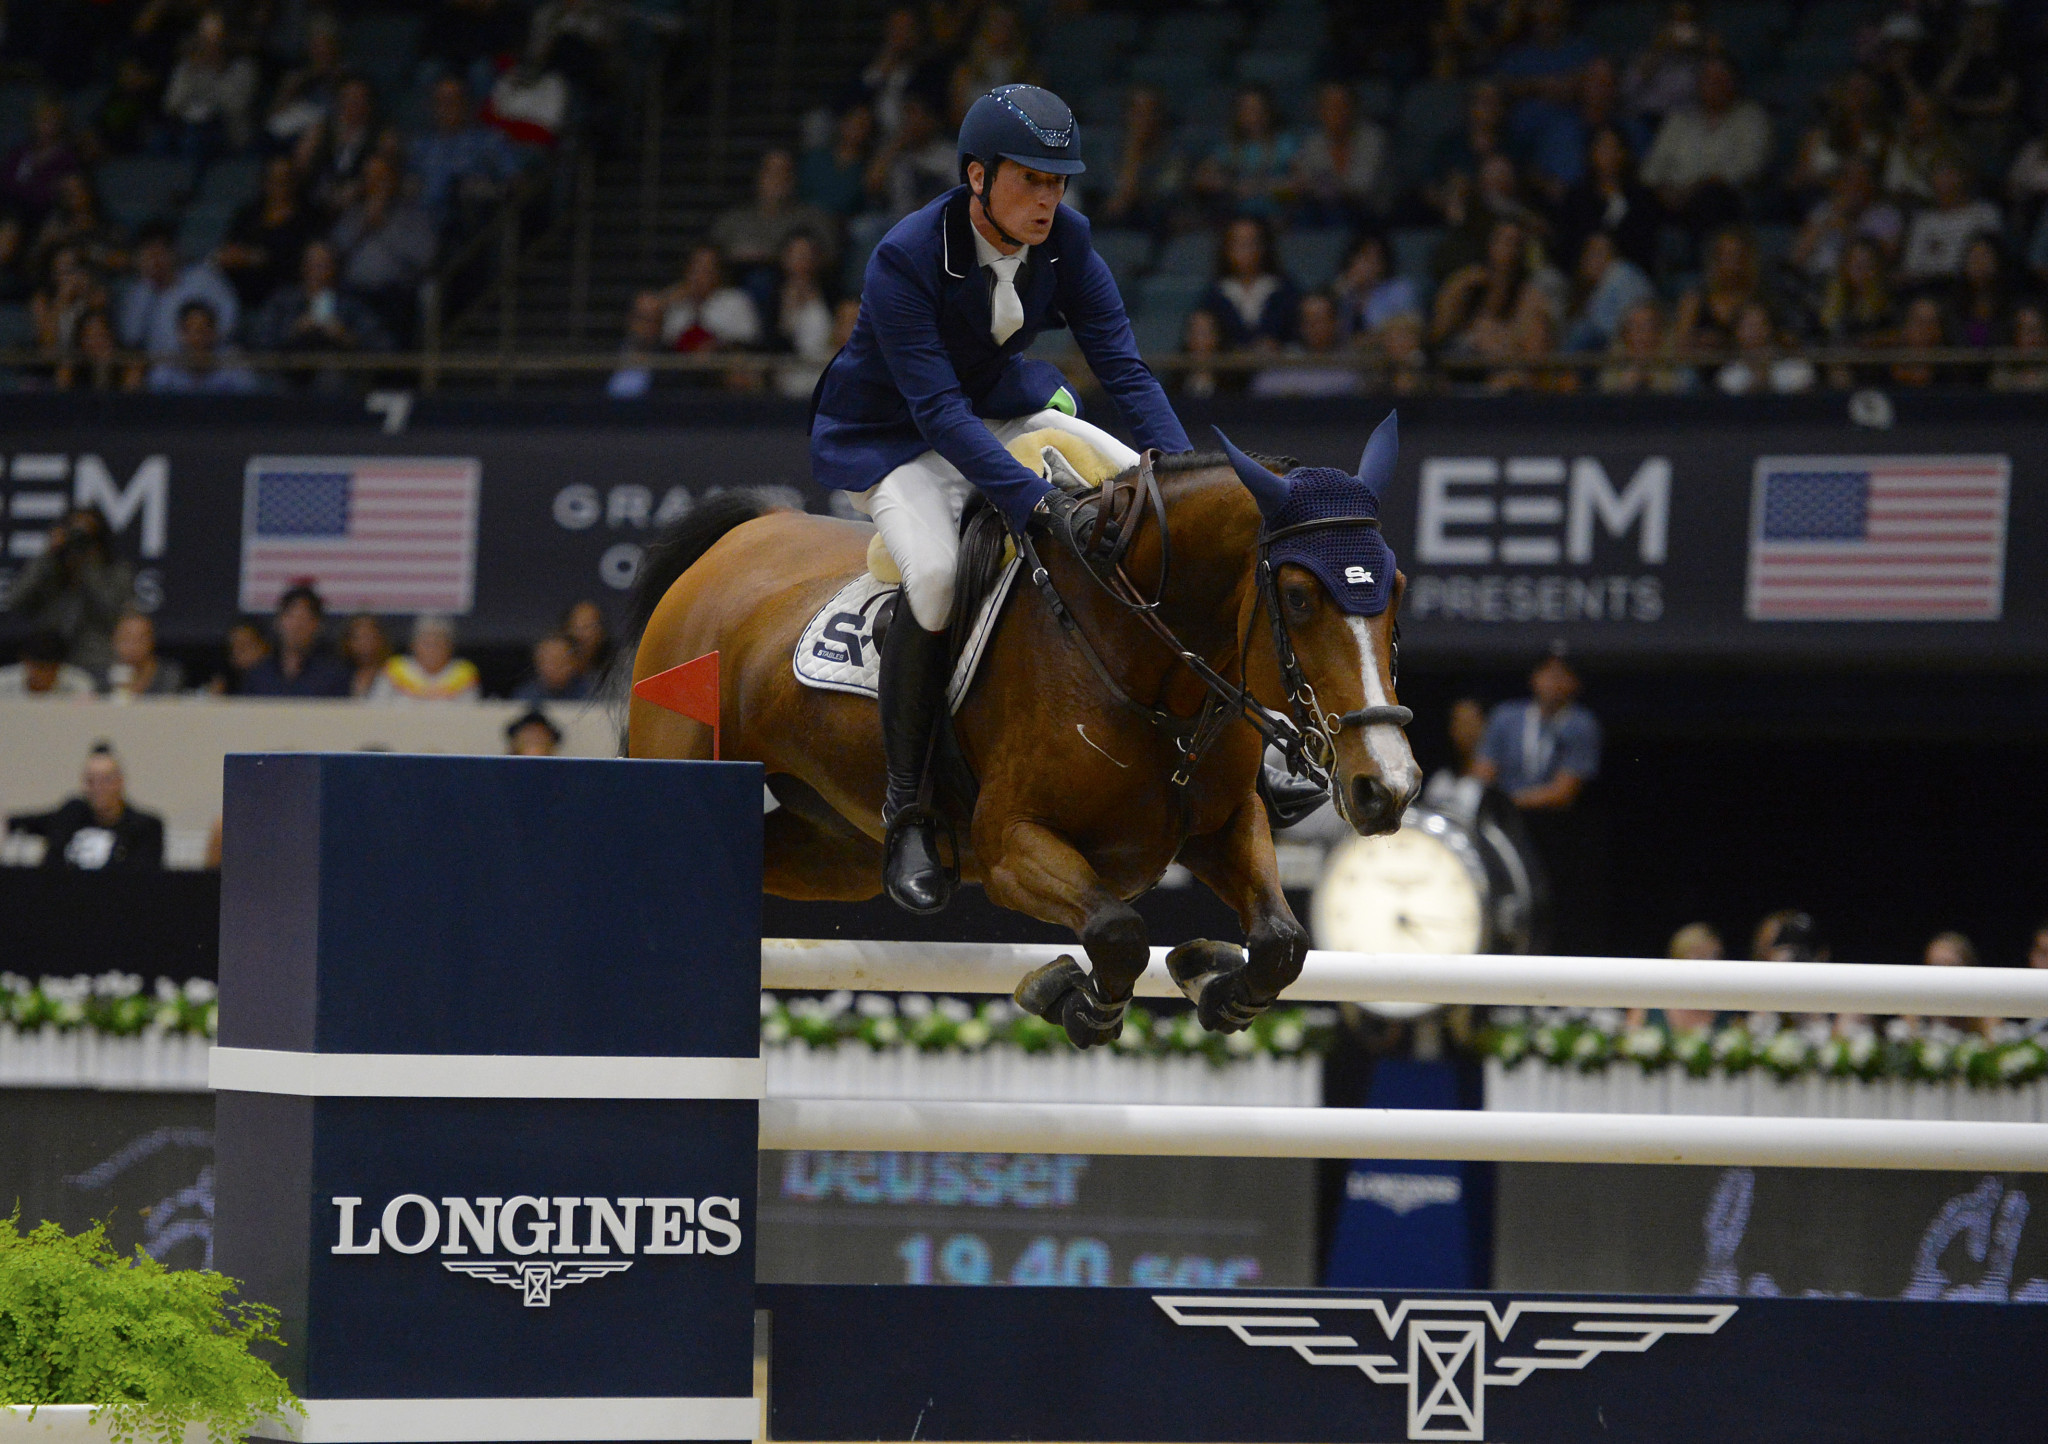 Germany's Daniel Deusser is 100 per cent certain of a place in the FEI Jumping World Cup Final, but a few spots are still up for grabs ©Getty Images